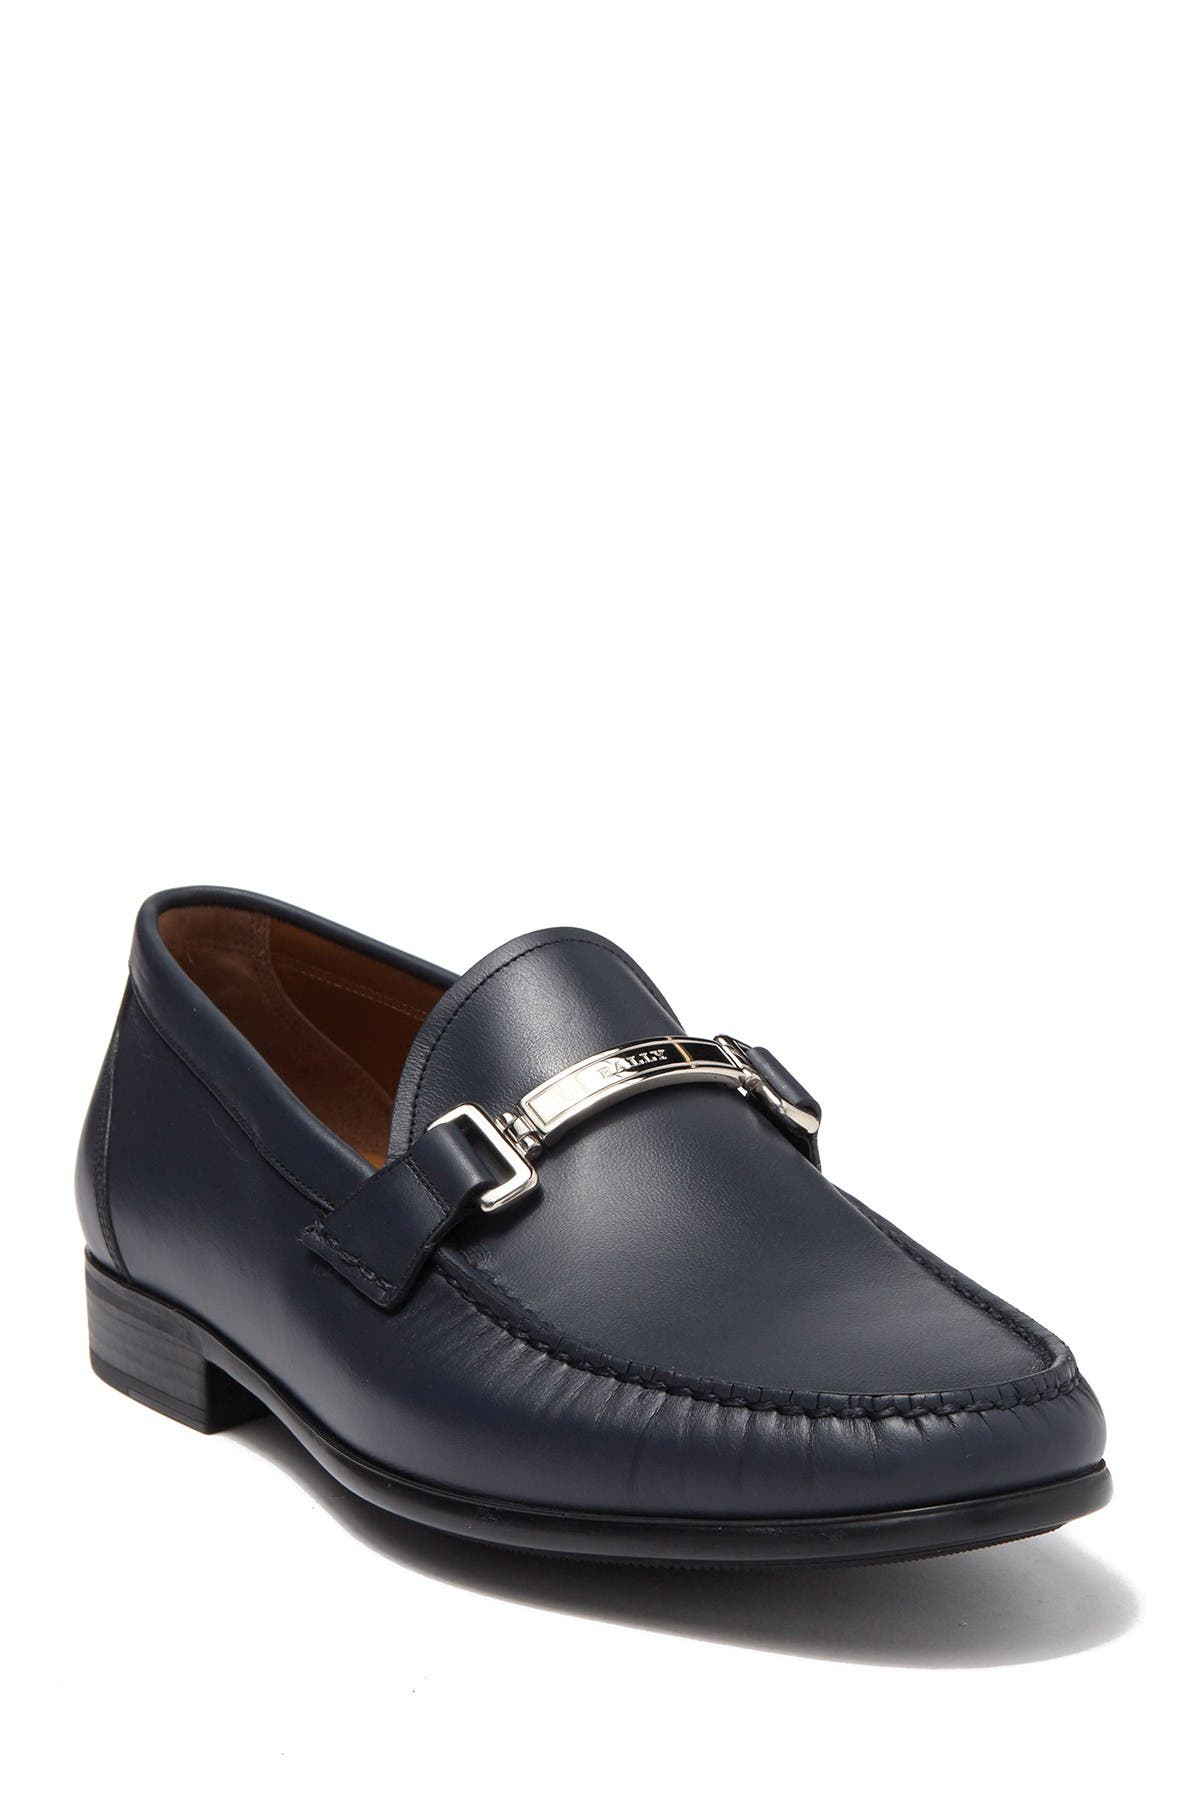 Image of BALLY Tecno Leather Loafer